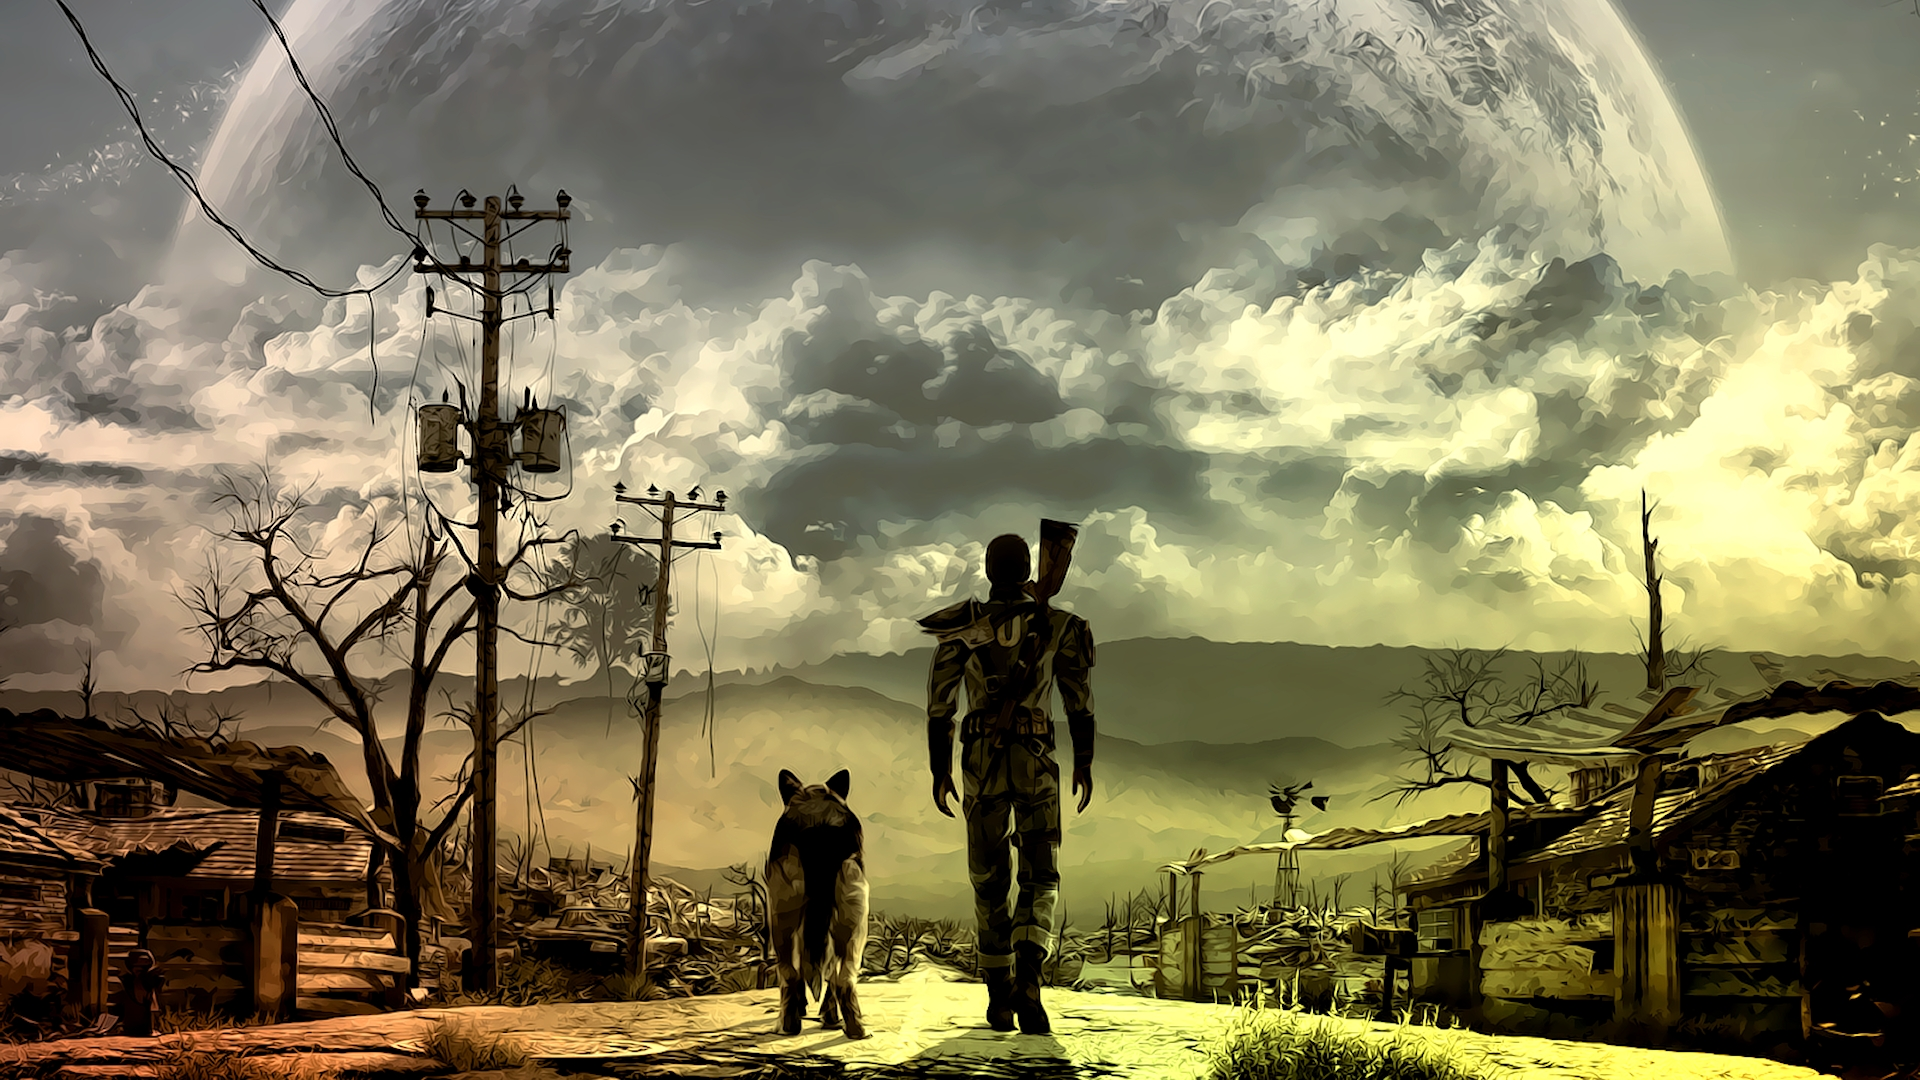 Fallout 3 full hd wallpaper and background image 1920x1080 id324425 video game fallout 3 wallpaper altavistaventures Gallery